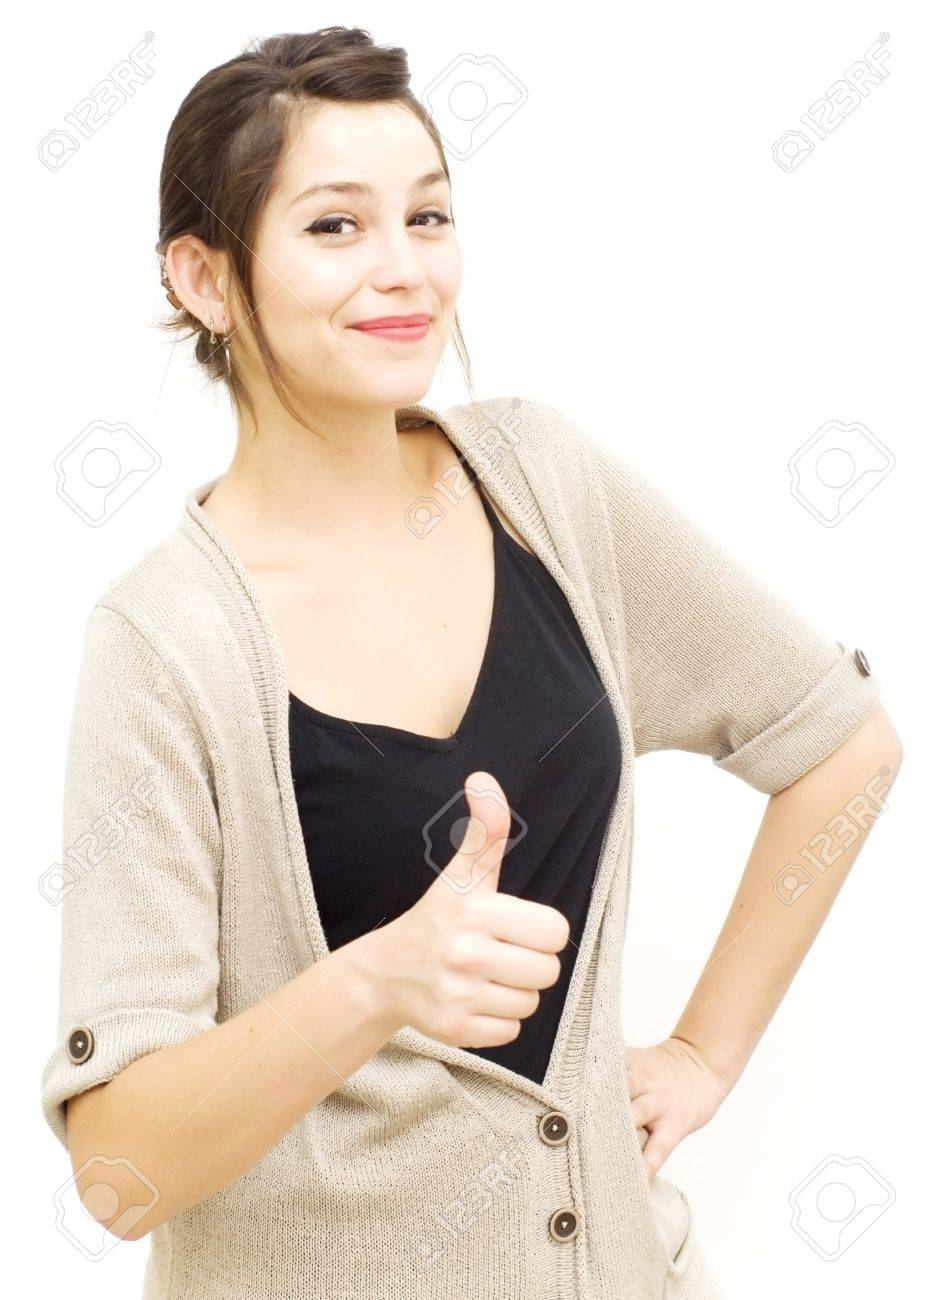 Portrait of a young woman with cardigan and her thumb up over white background - 20670777